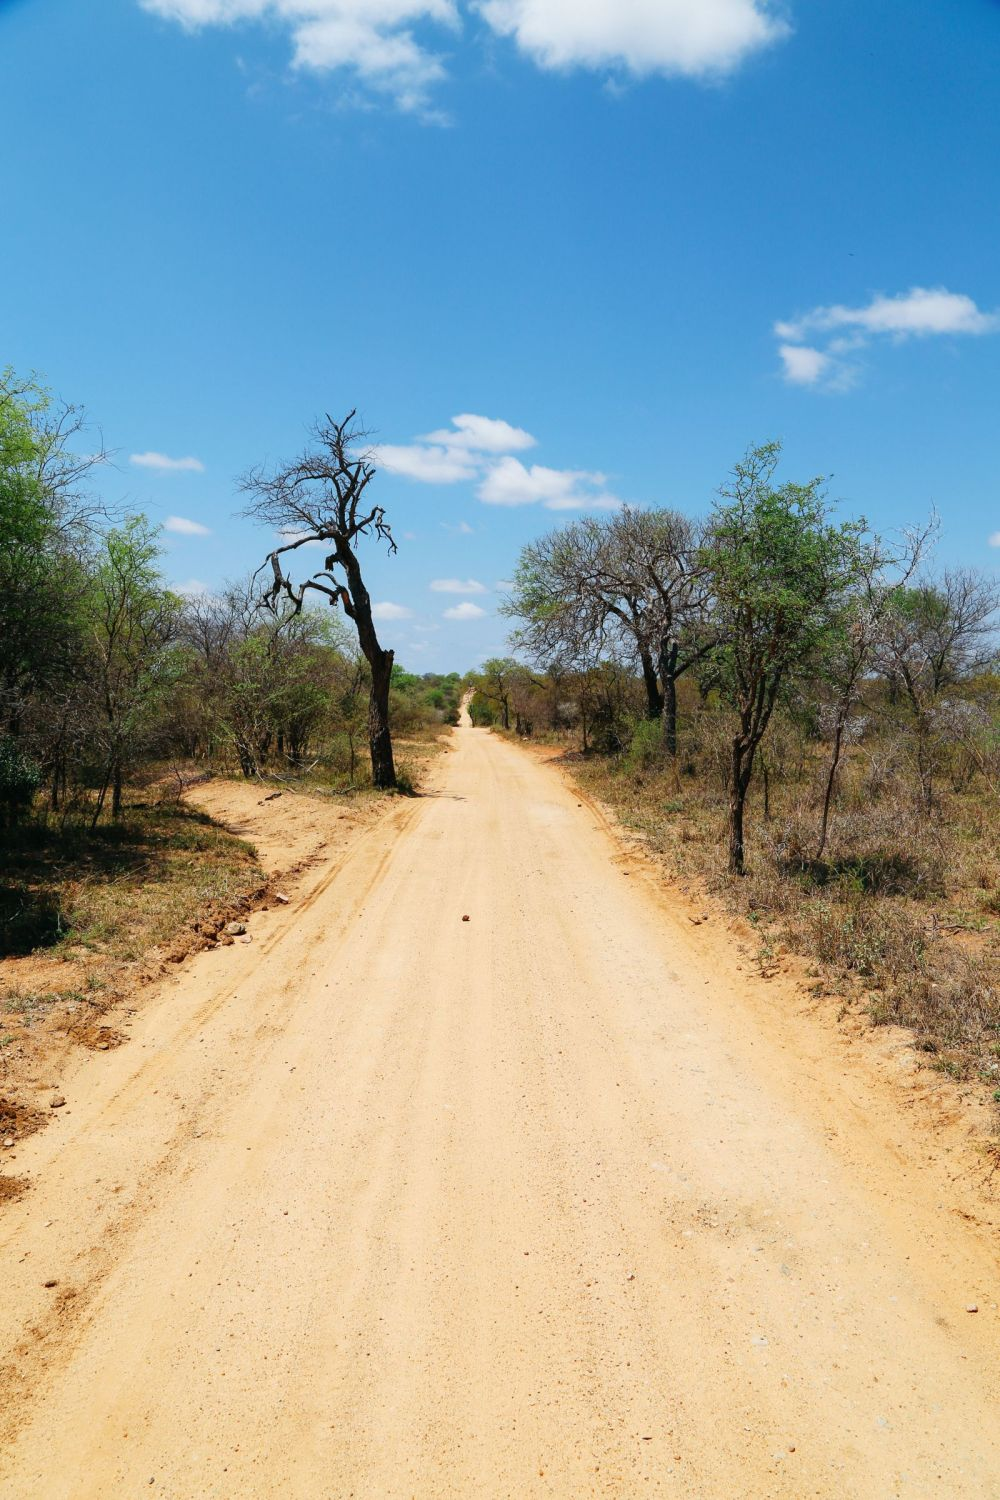 Arriving On Safari In South Africa... (Definitely Not Your Average Airport Transfer!) (19)